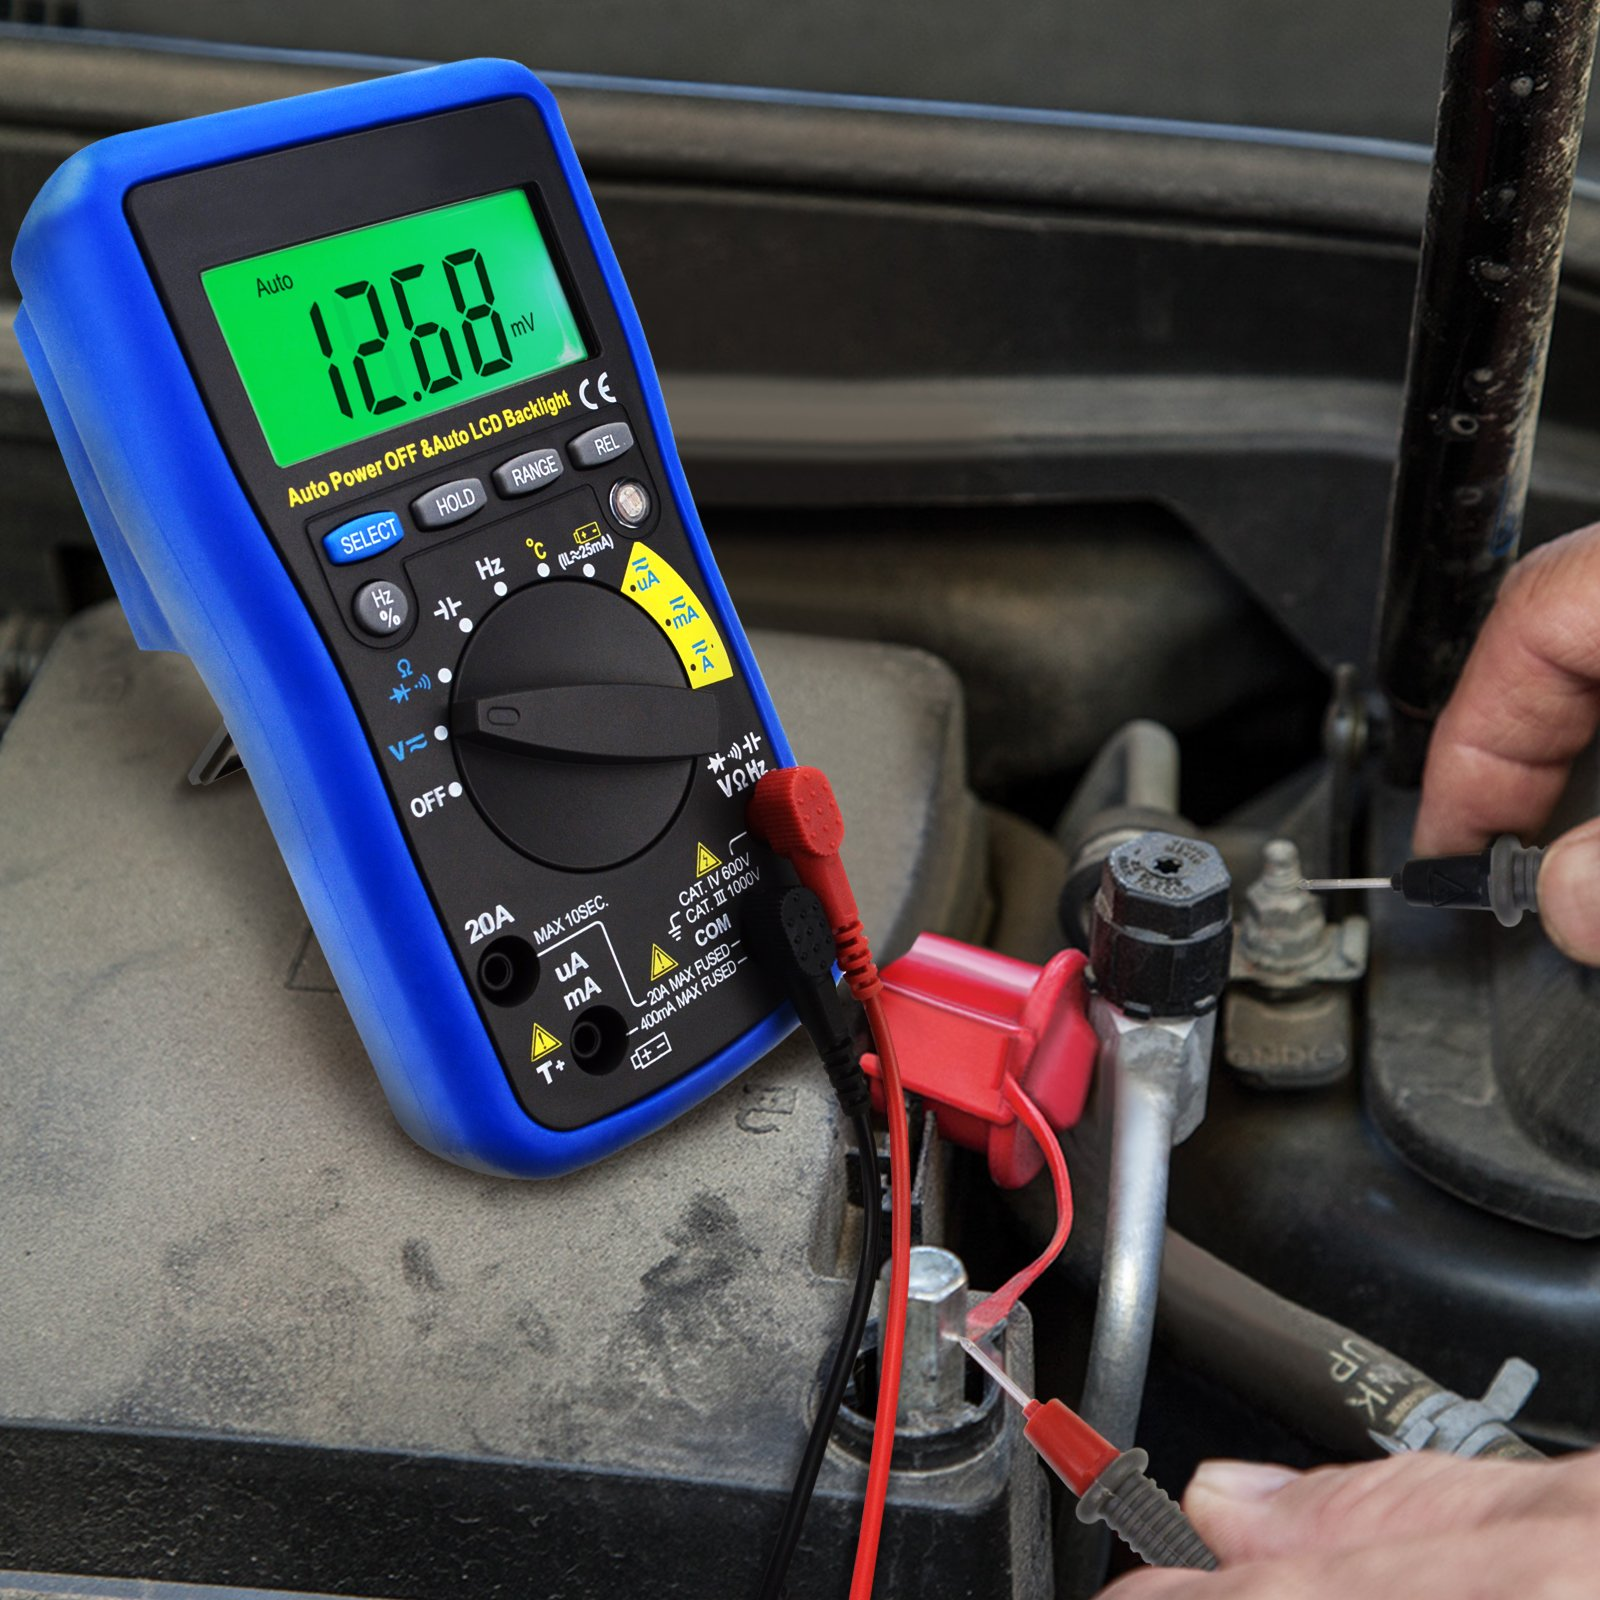 Measure AC & DC voltage, AC & DC current, resistance, frequency,  capacitance, temperature, battery test, duty cycle, audible continuity and  positive diode ...